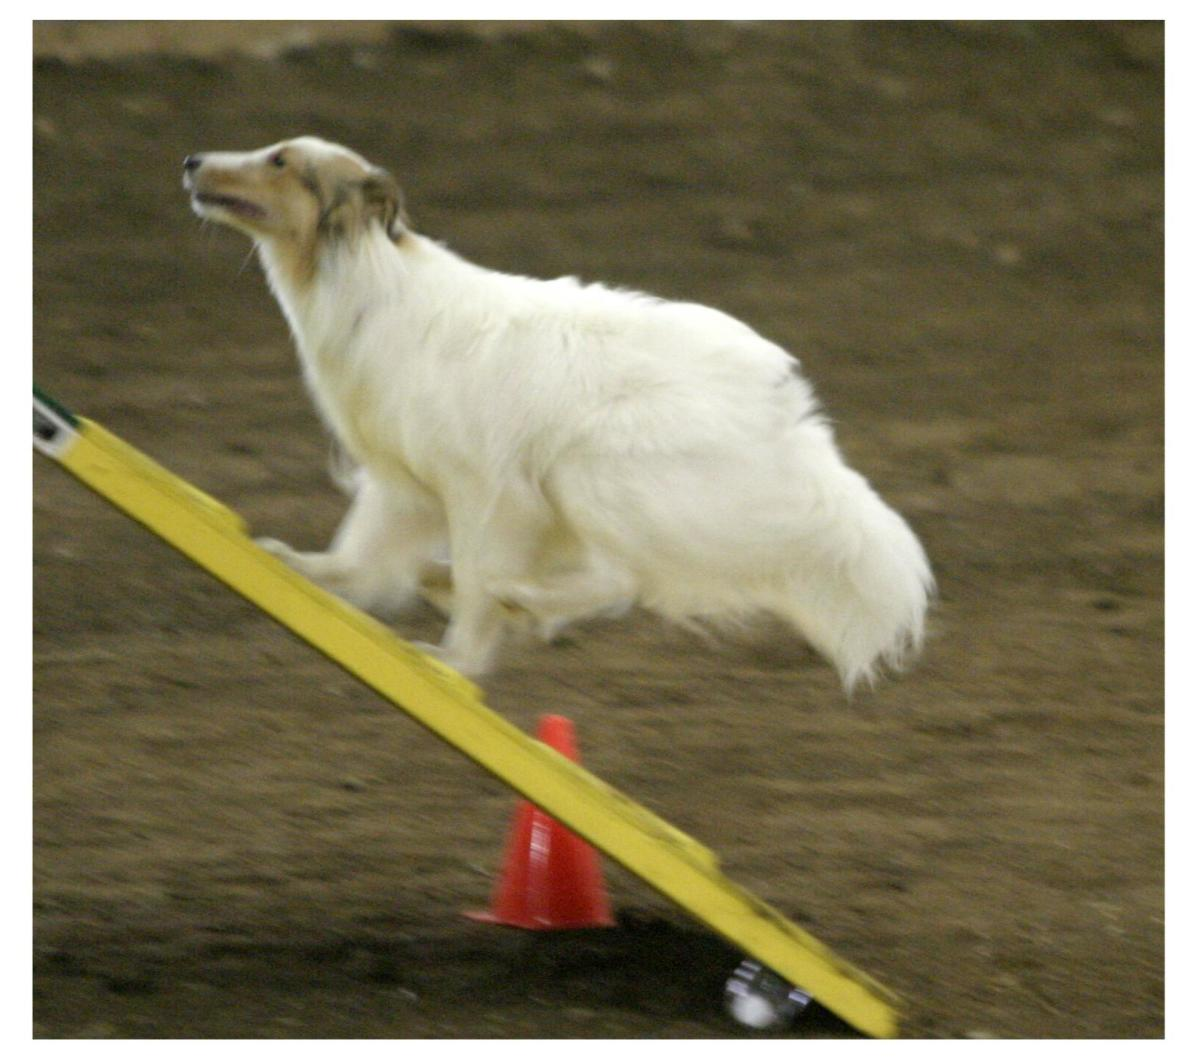 When is Your Agility Team Ready to Trial?: The Pitfalls of Showing too Early in Dog Agility